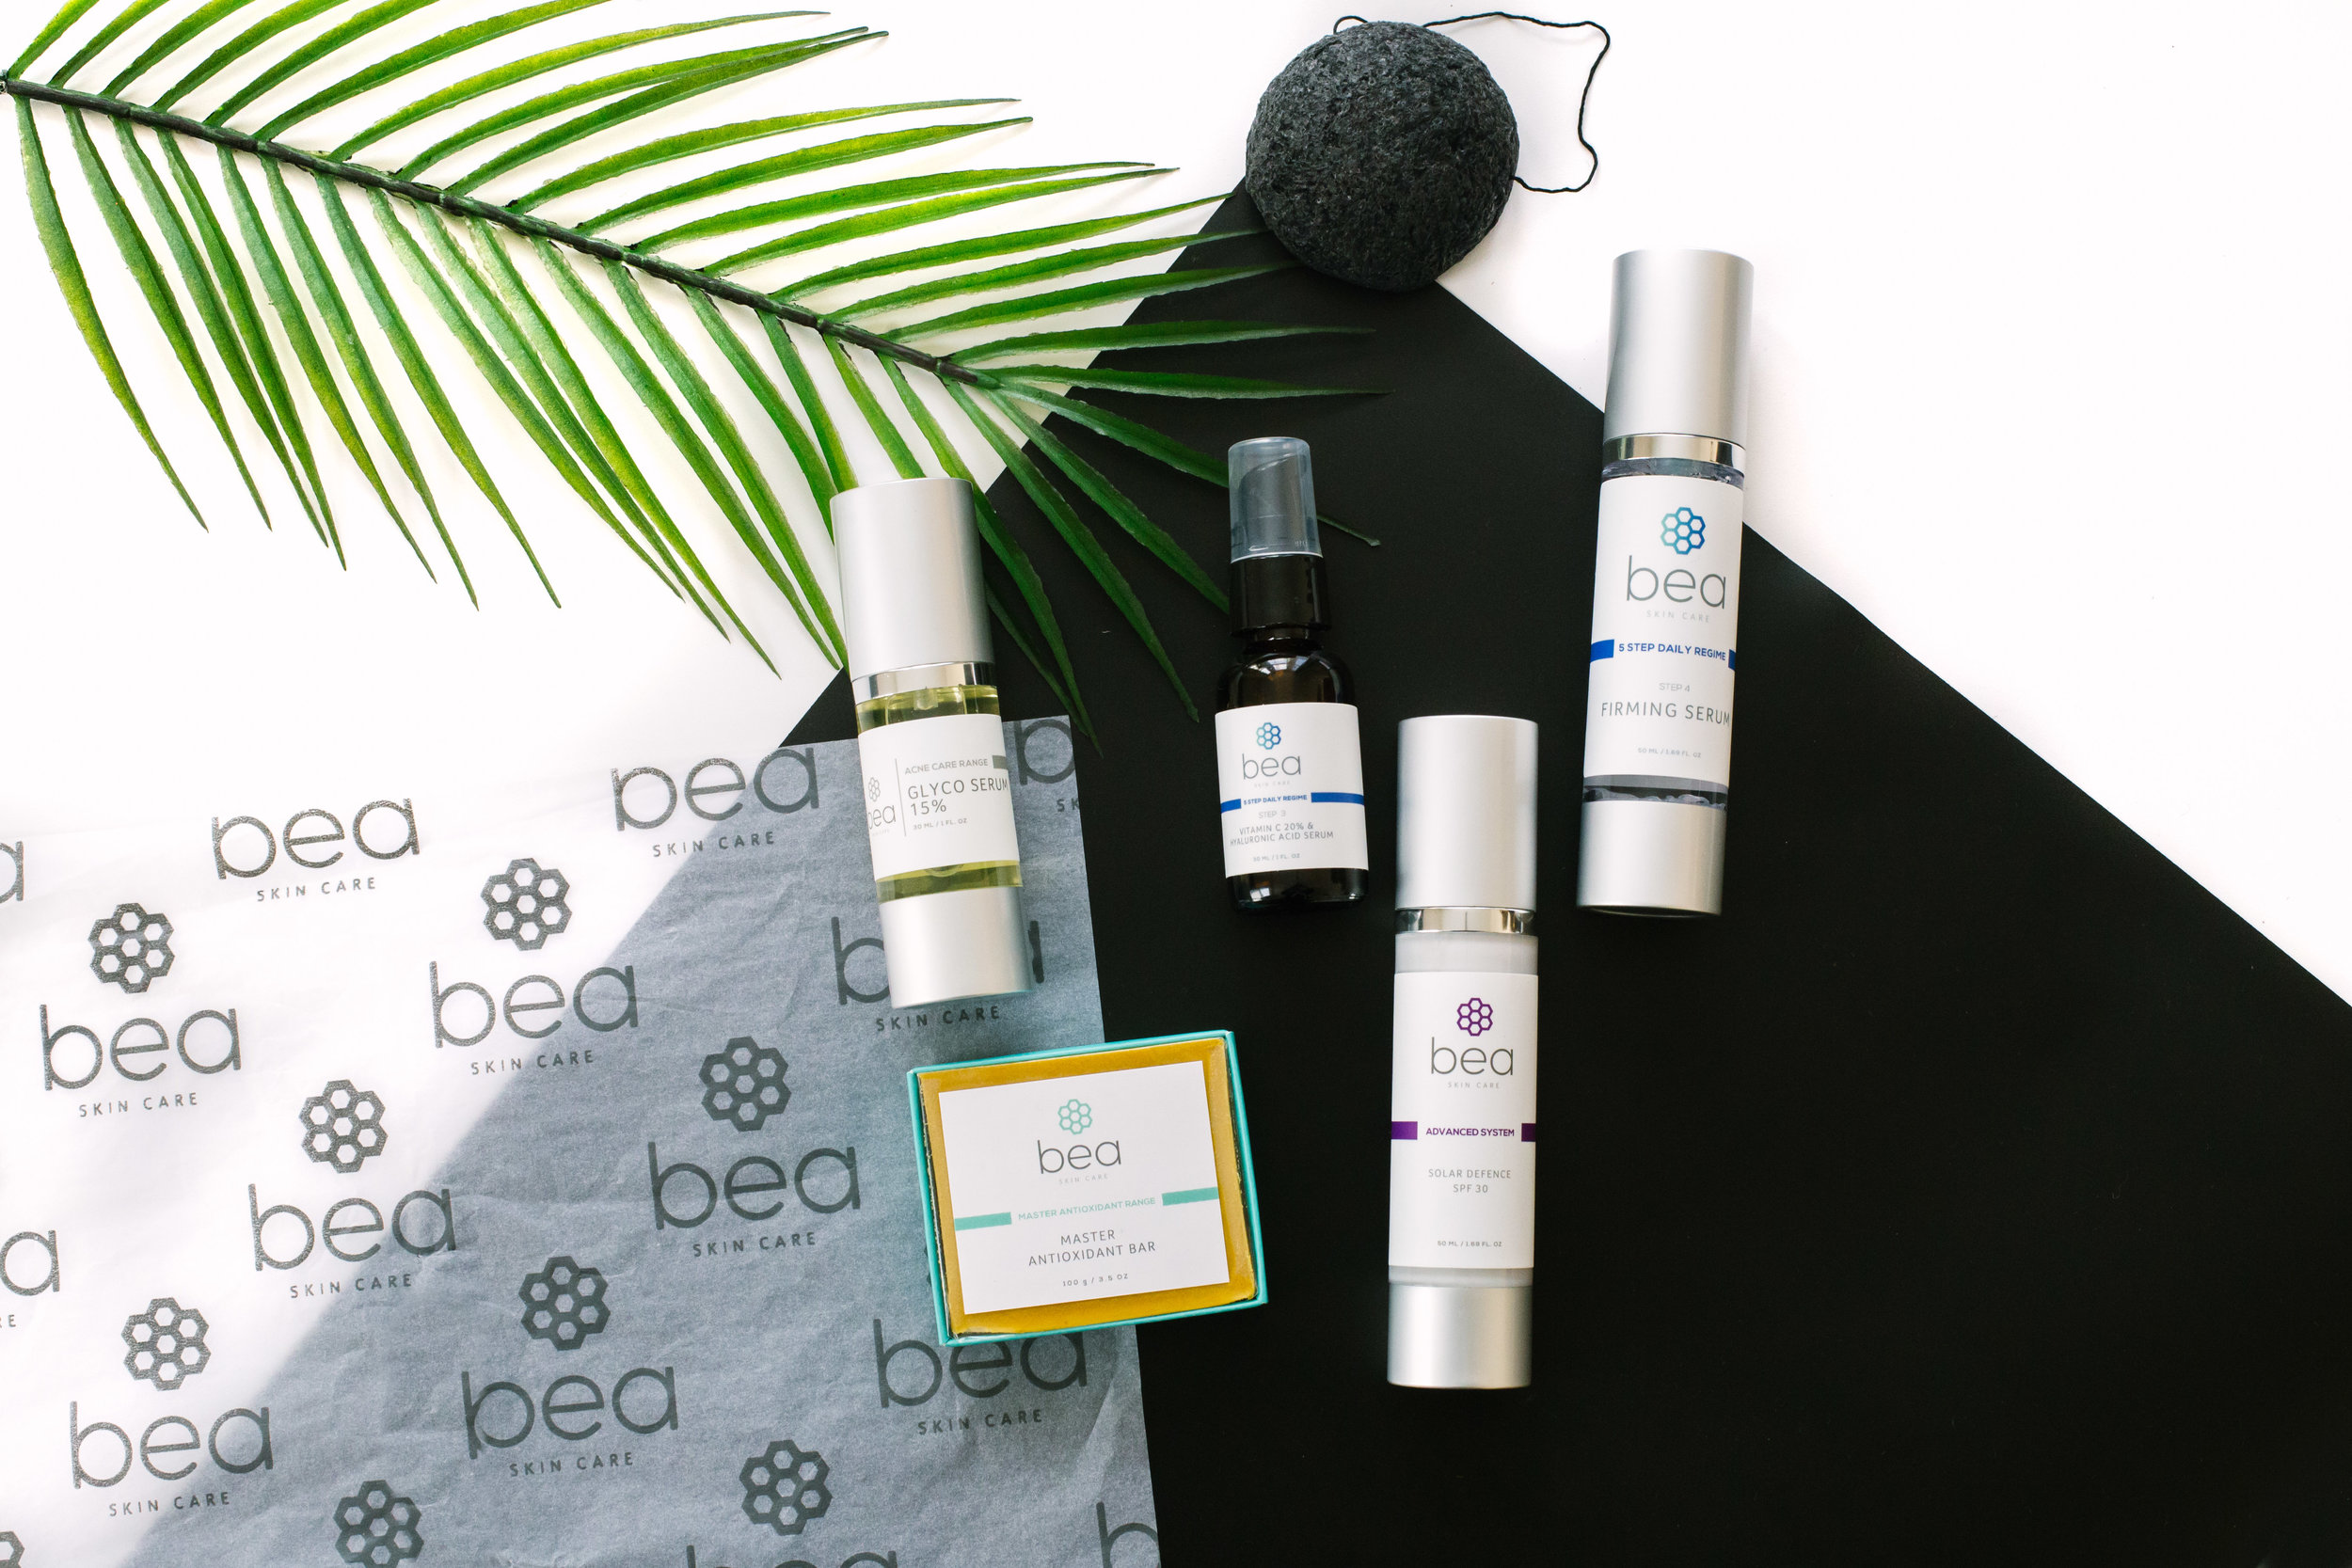 Bea_skin_care_seasonal_Black Friday (7 of 7).jpg